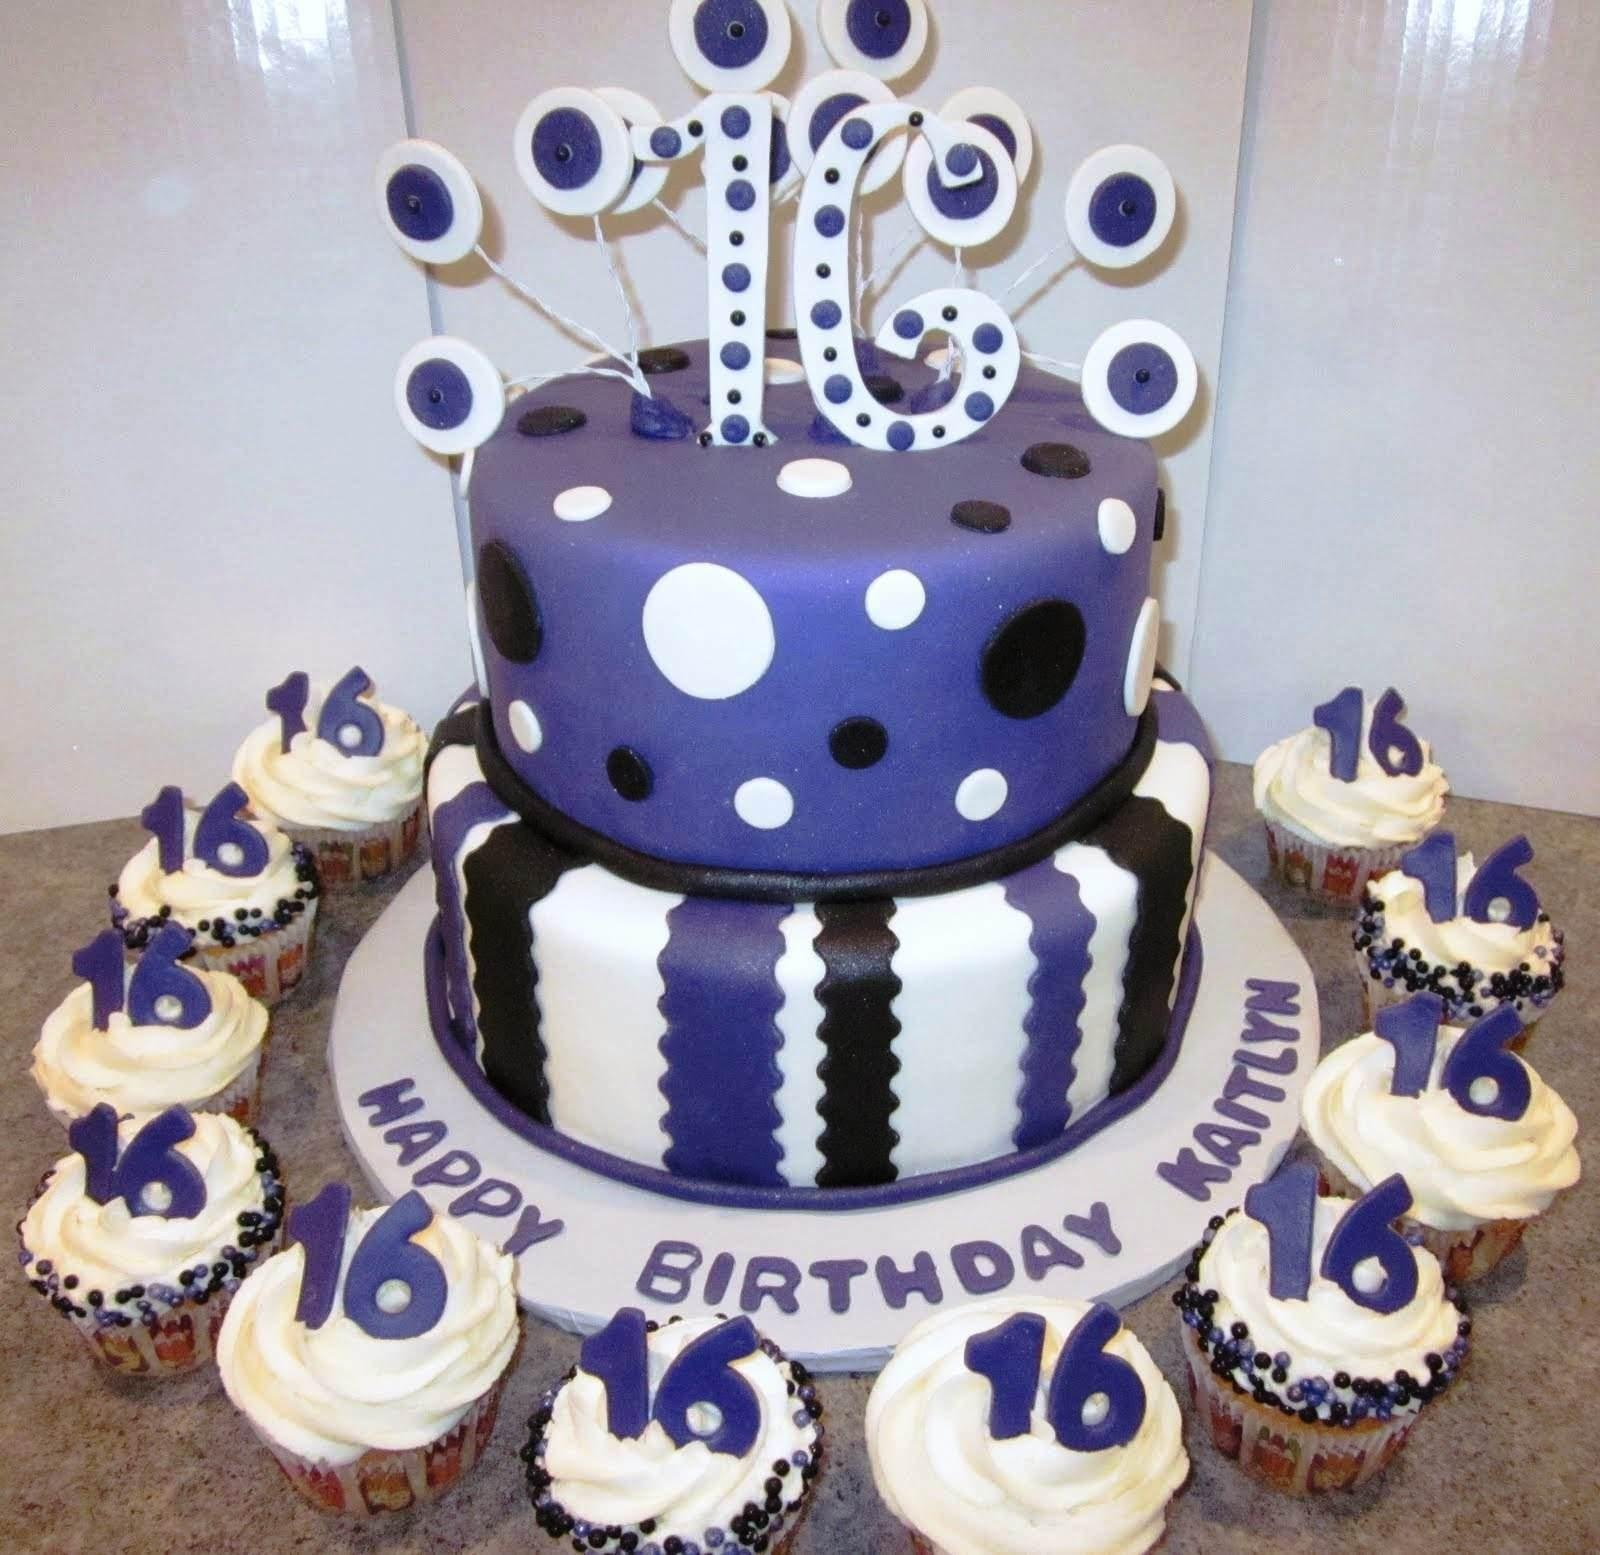 10 Wonderful Sweet 16 Ideas For Boys 16th birthday cake toppers 1600x1555 boys 16th birthday 2020